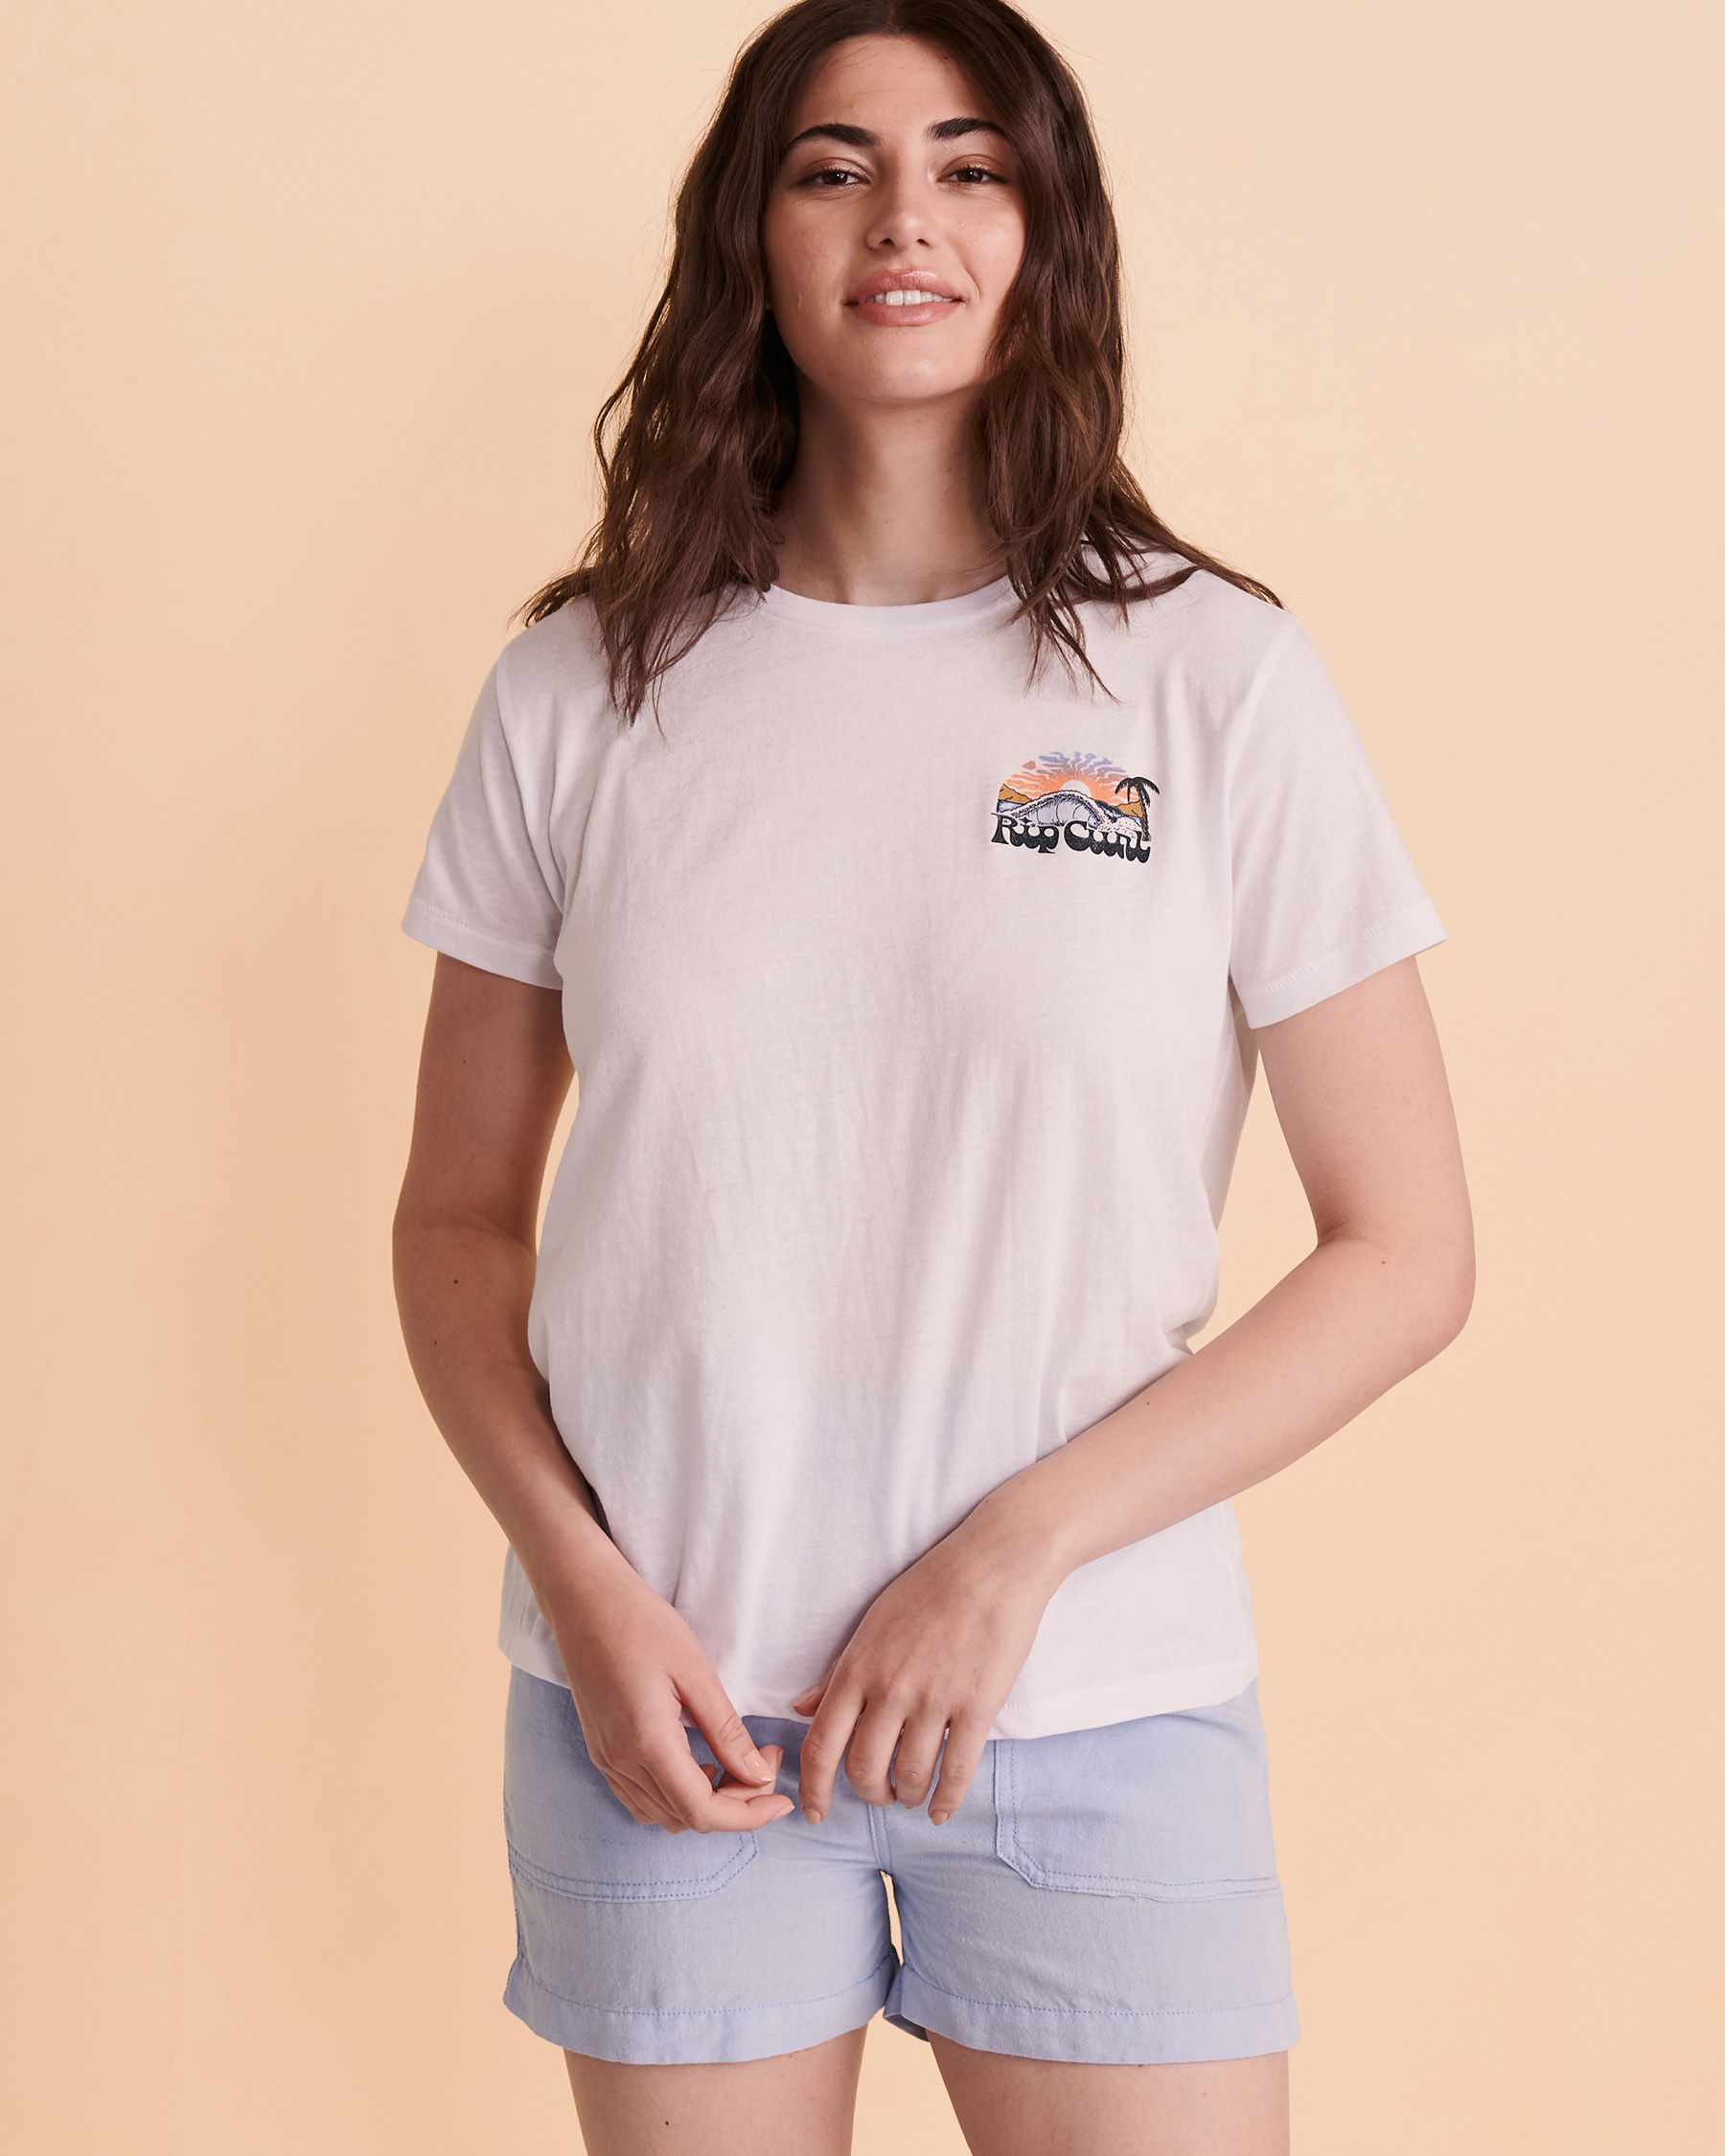 RIP CURL BREAKING WAVE T-shirt White GTEUJ8 - View1